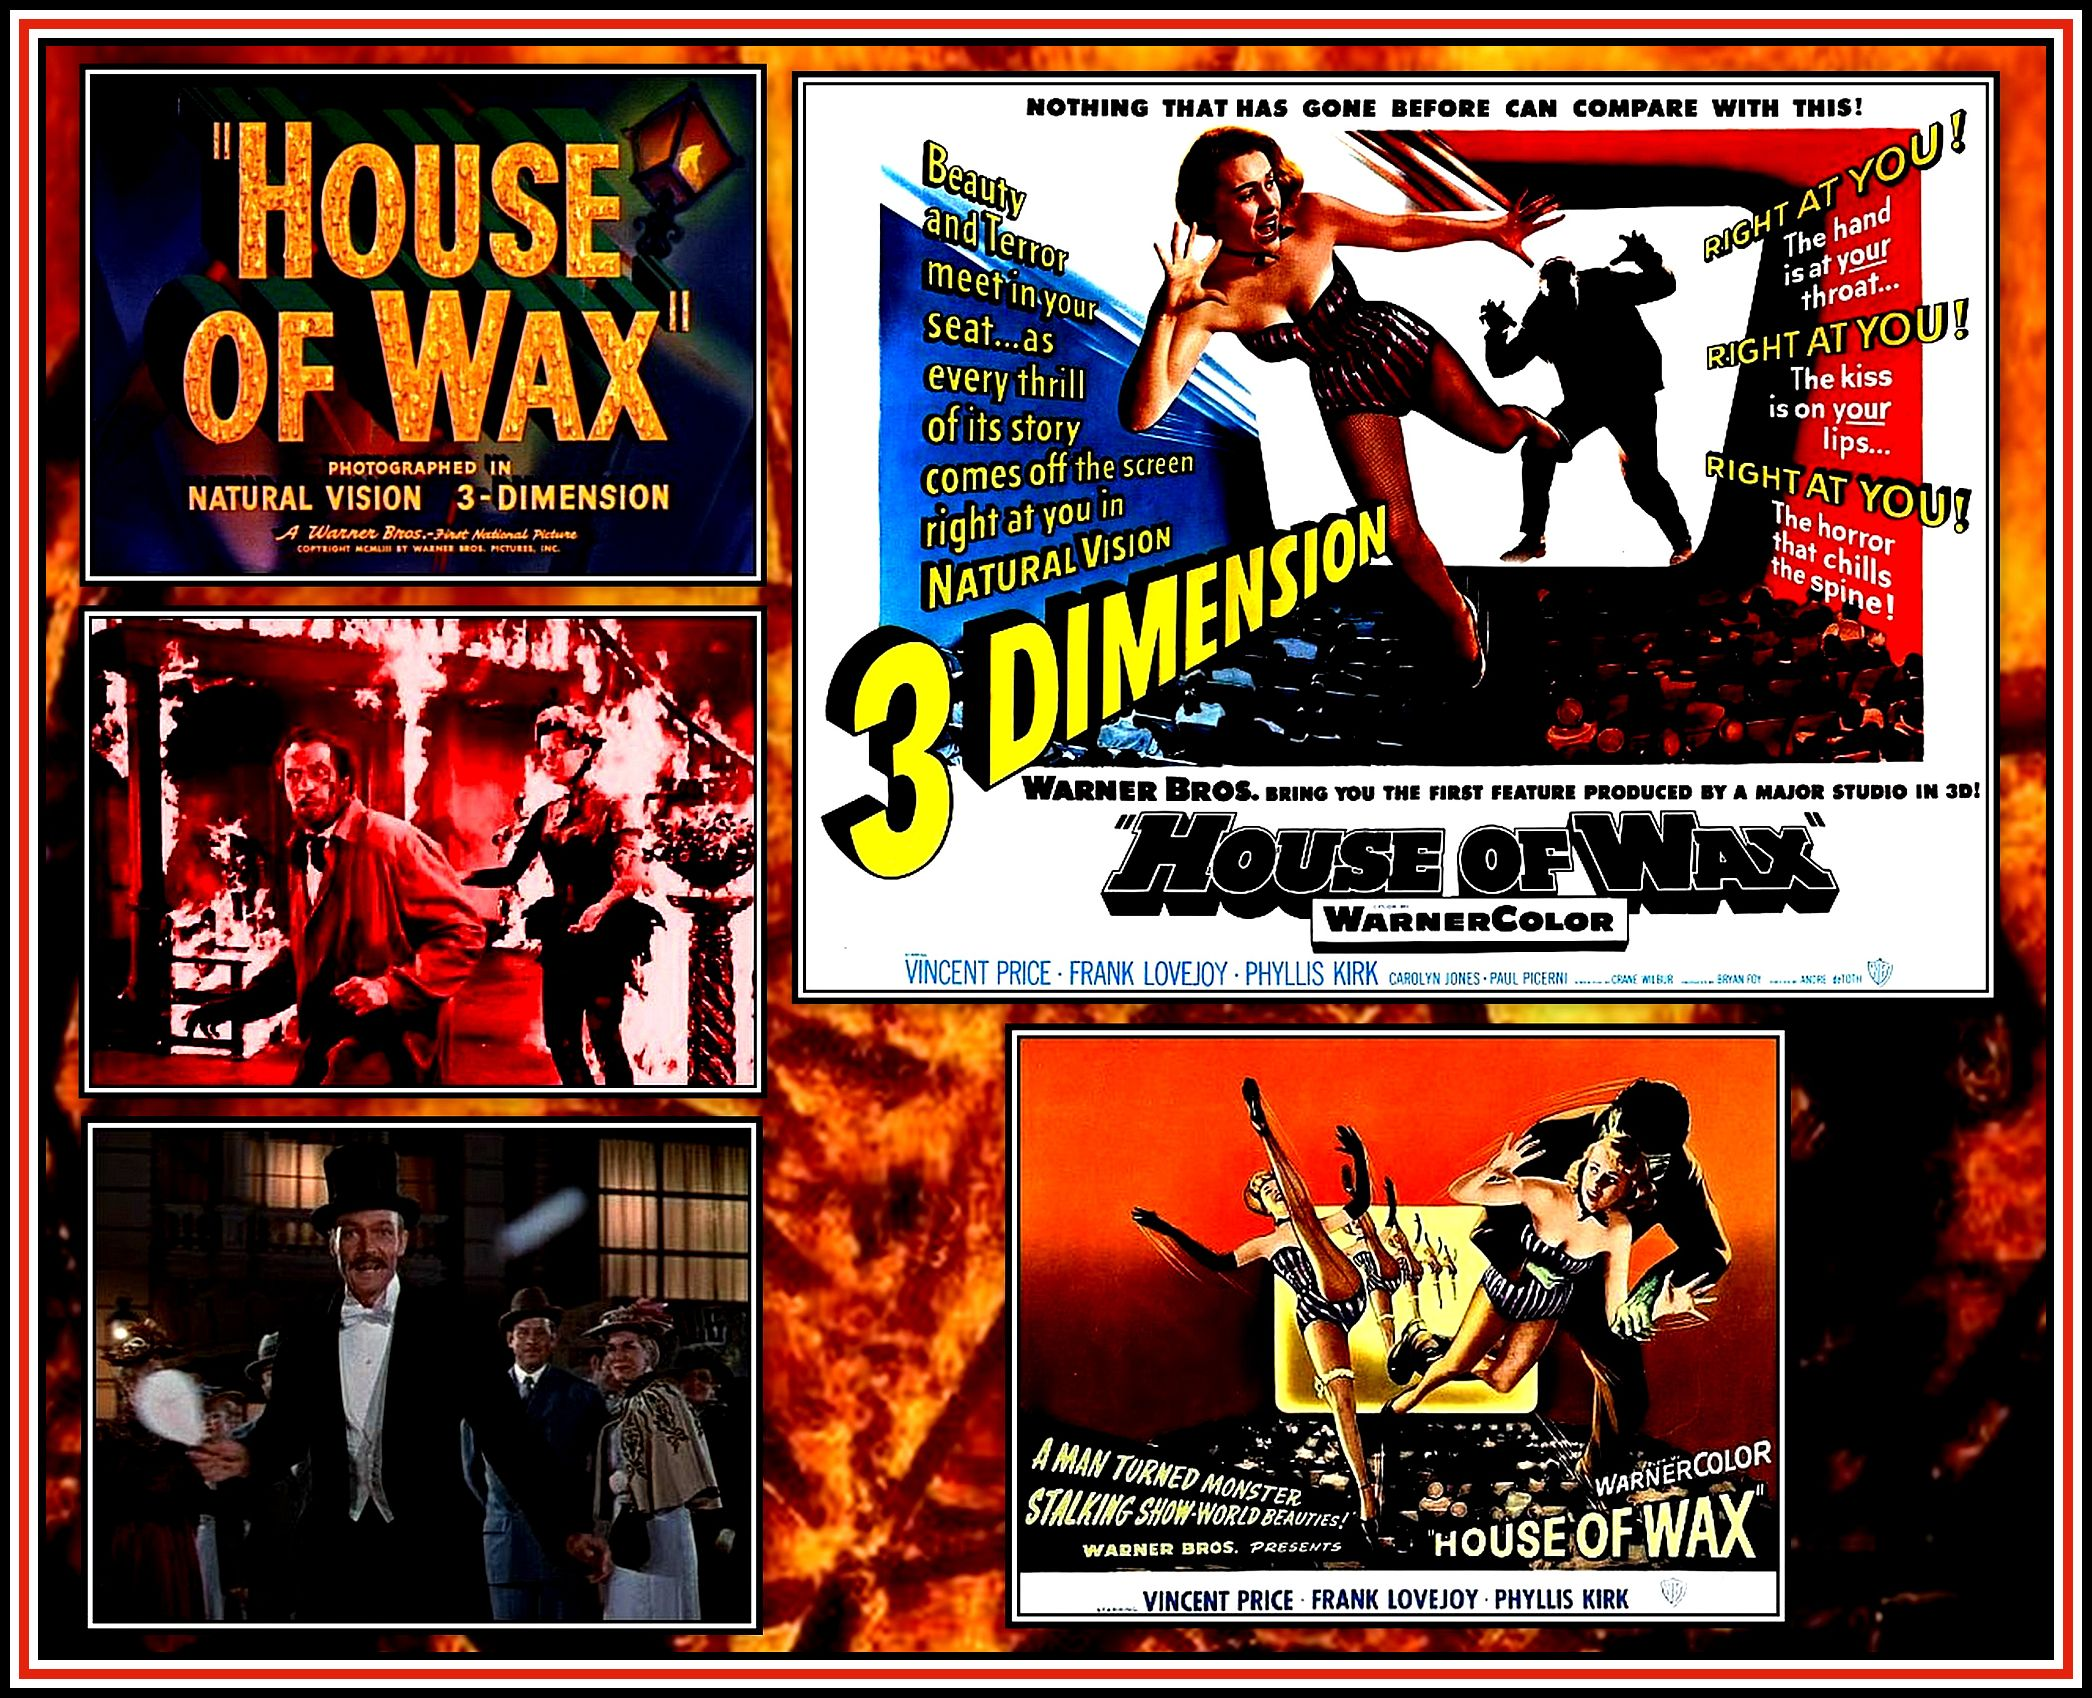 House of Wax Collage